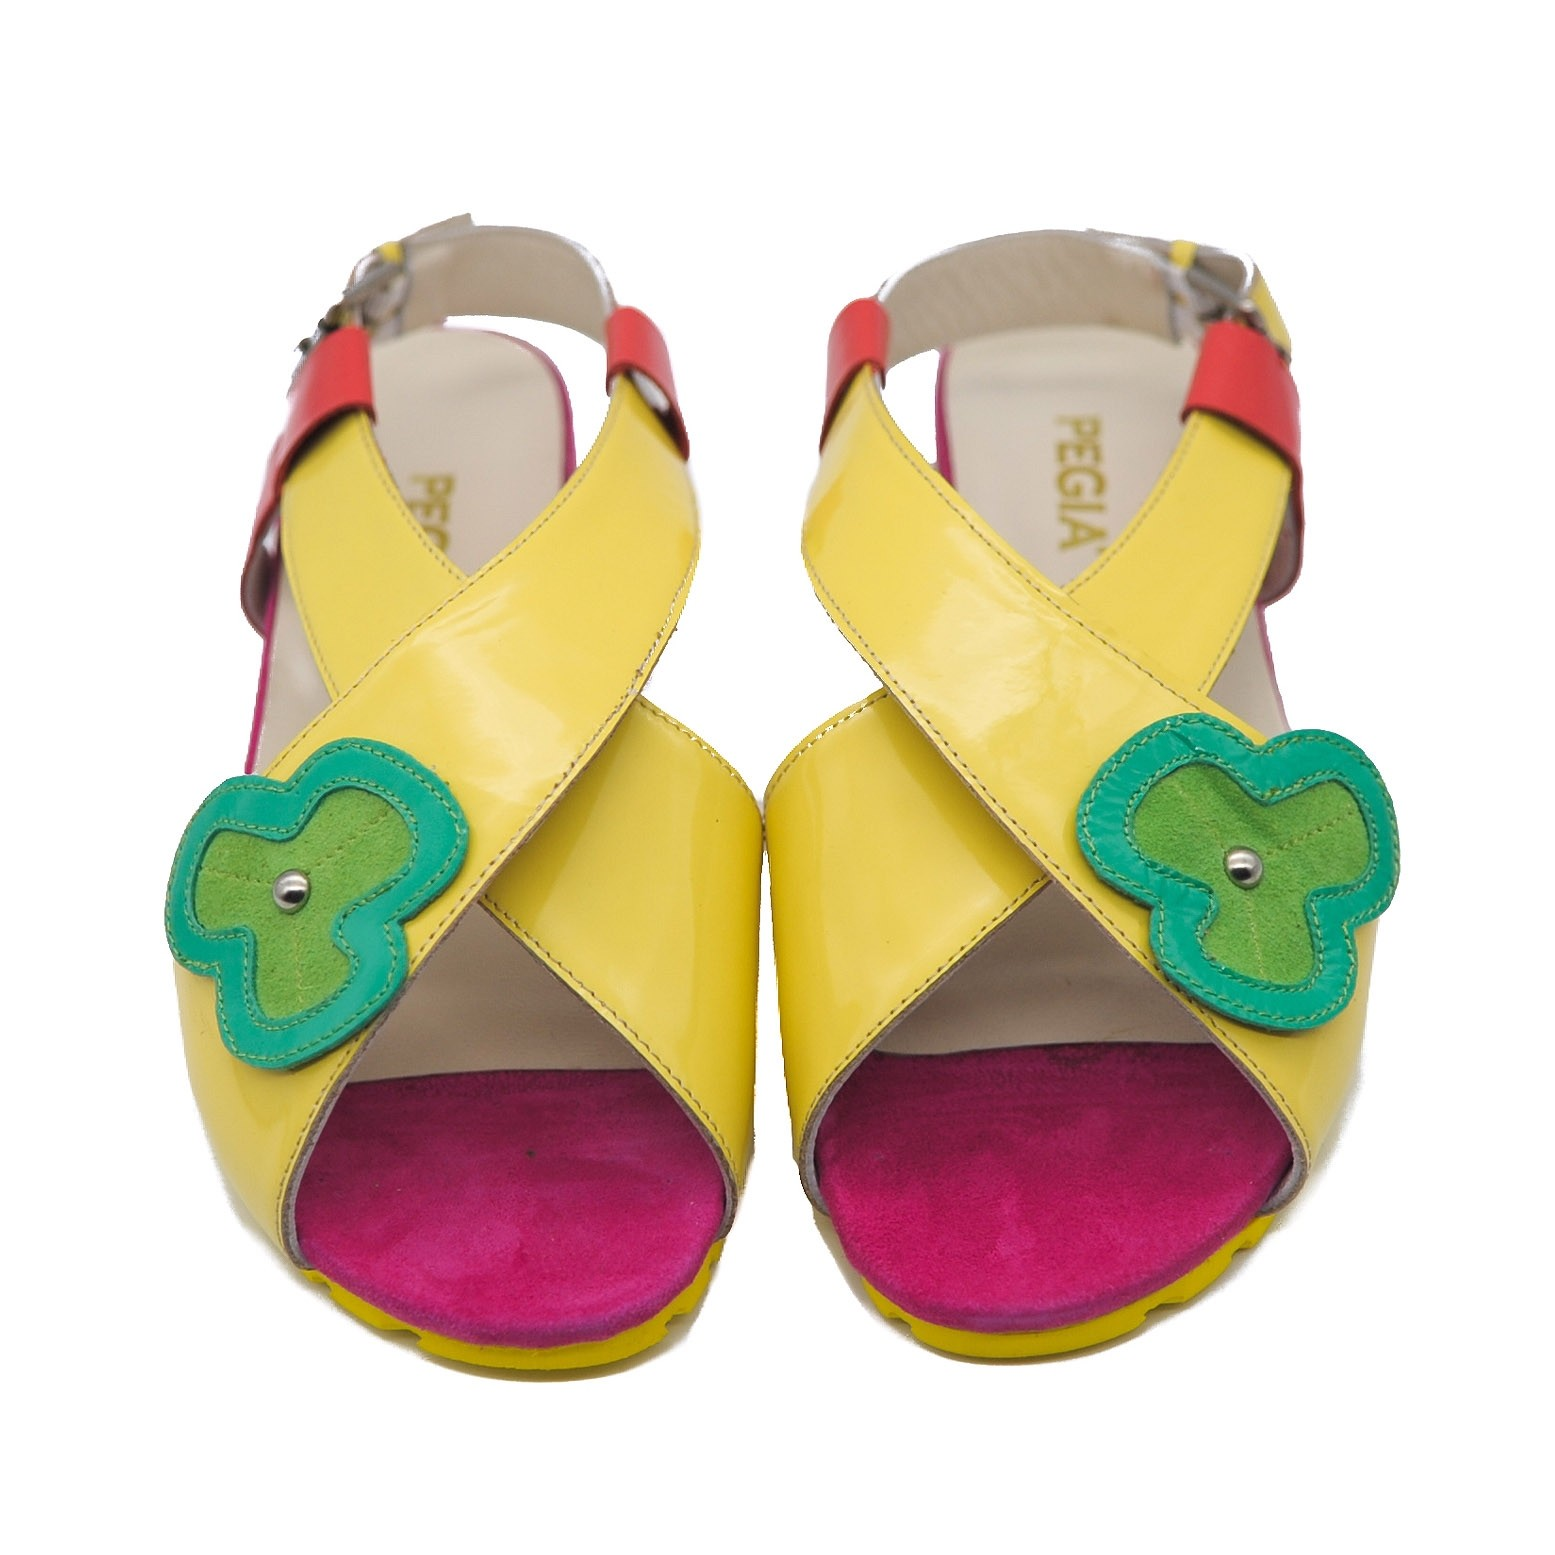 Pegia Ladies Leather Patent Yellow Camper Sandals with Green Flower